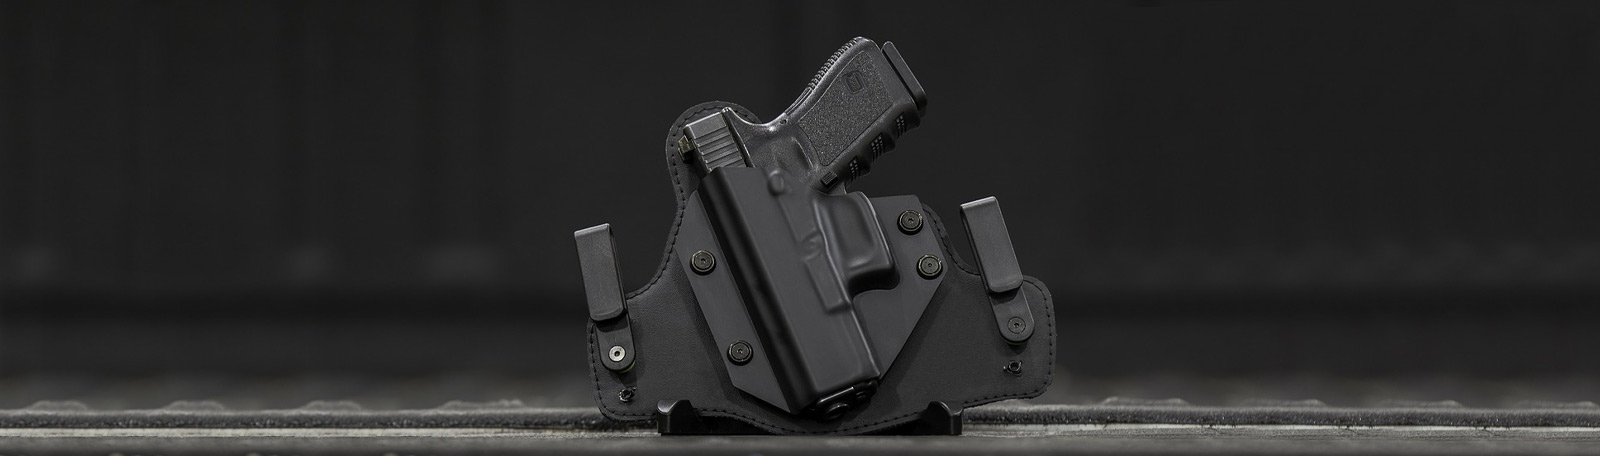 Gear - Holsters Category